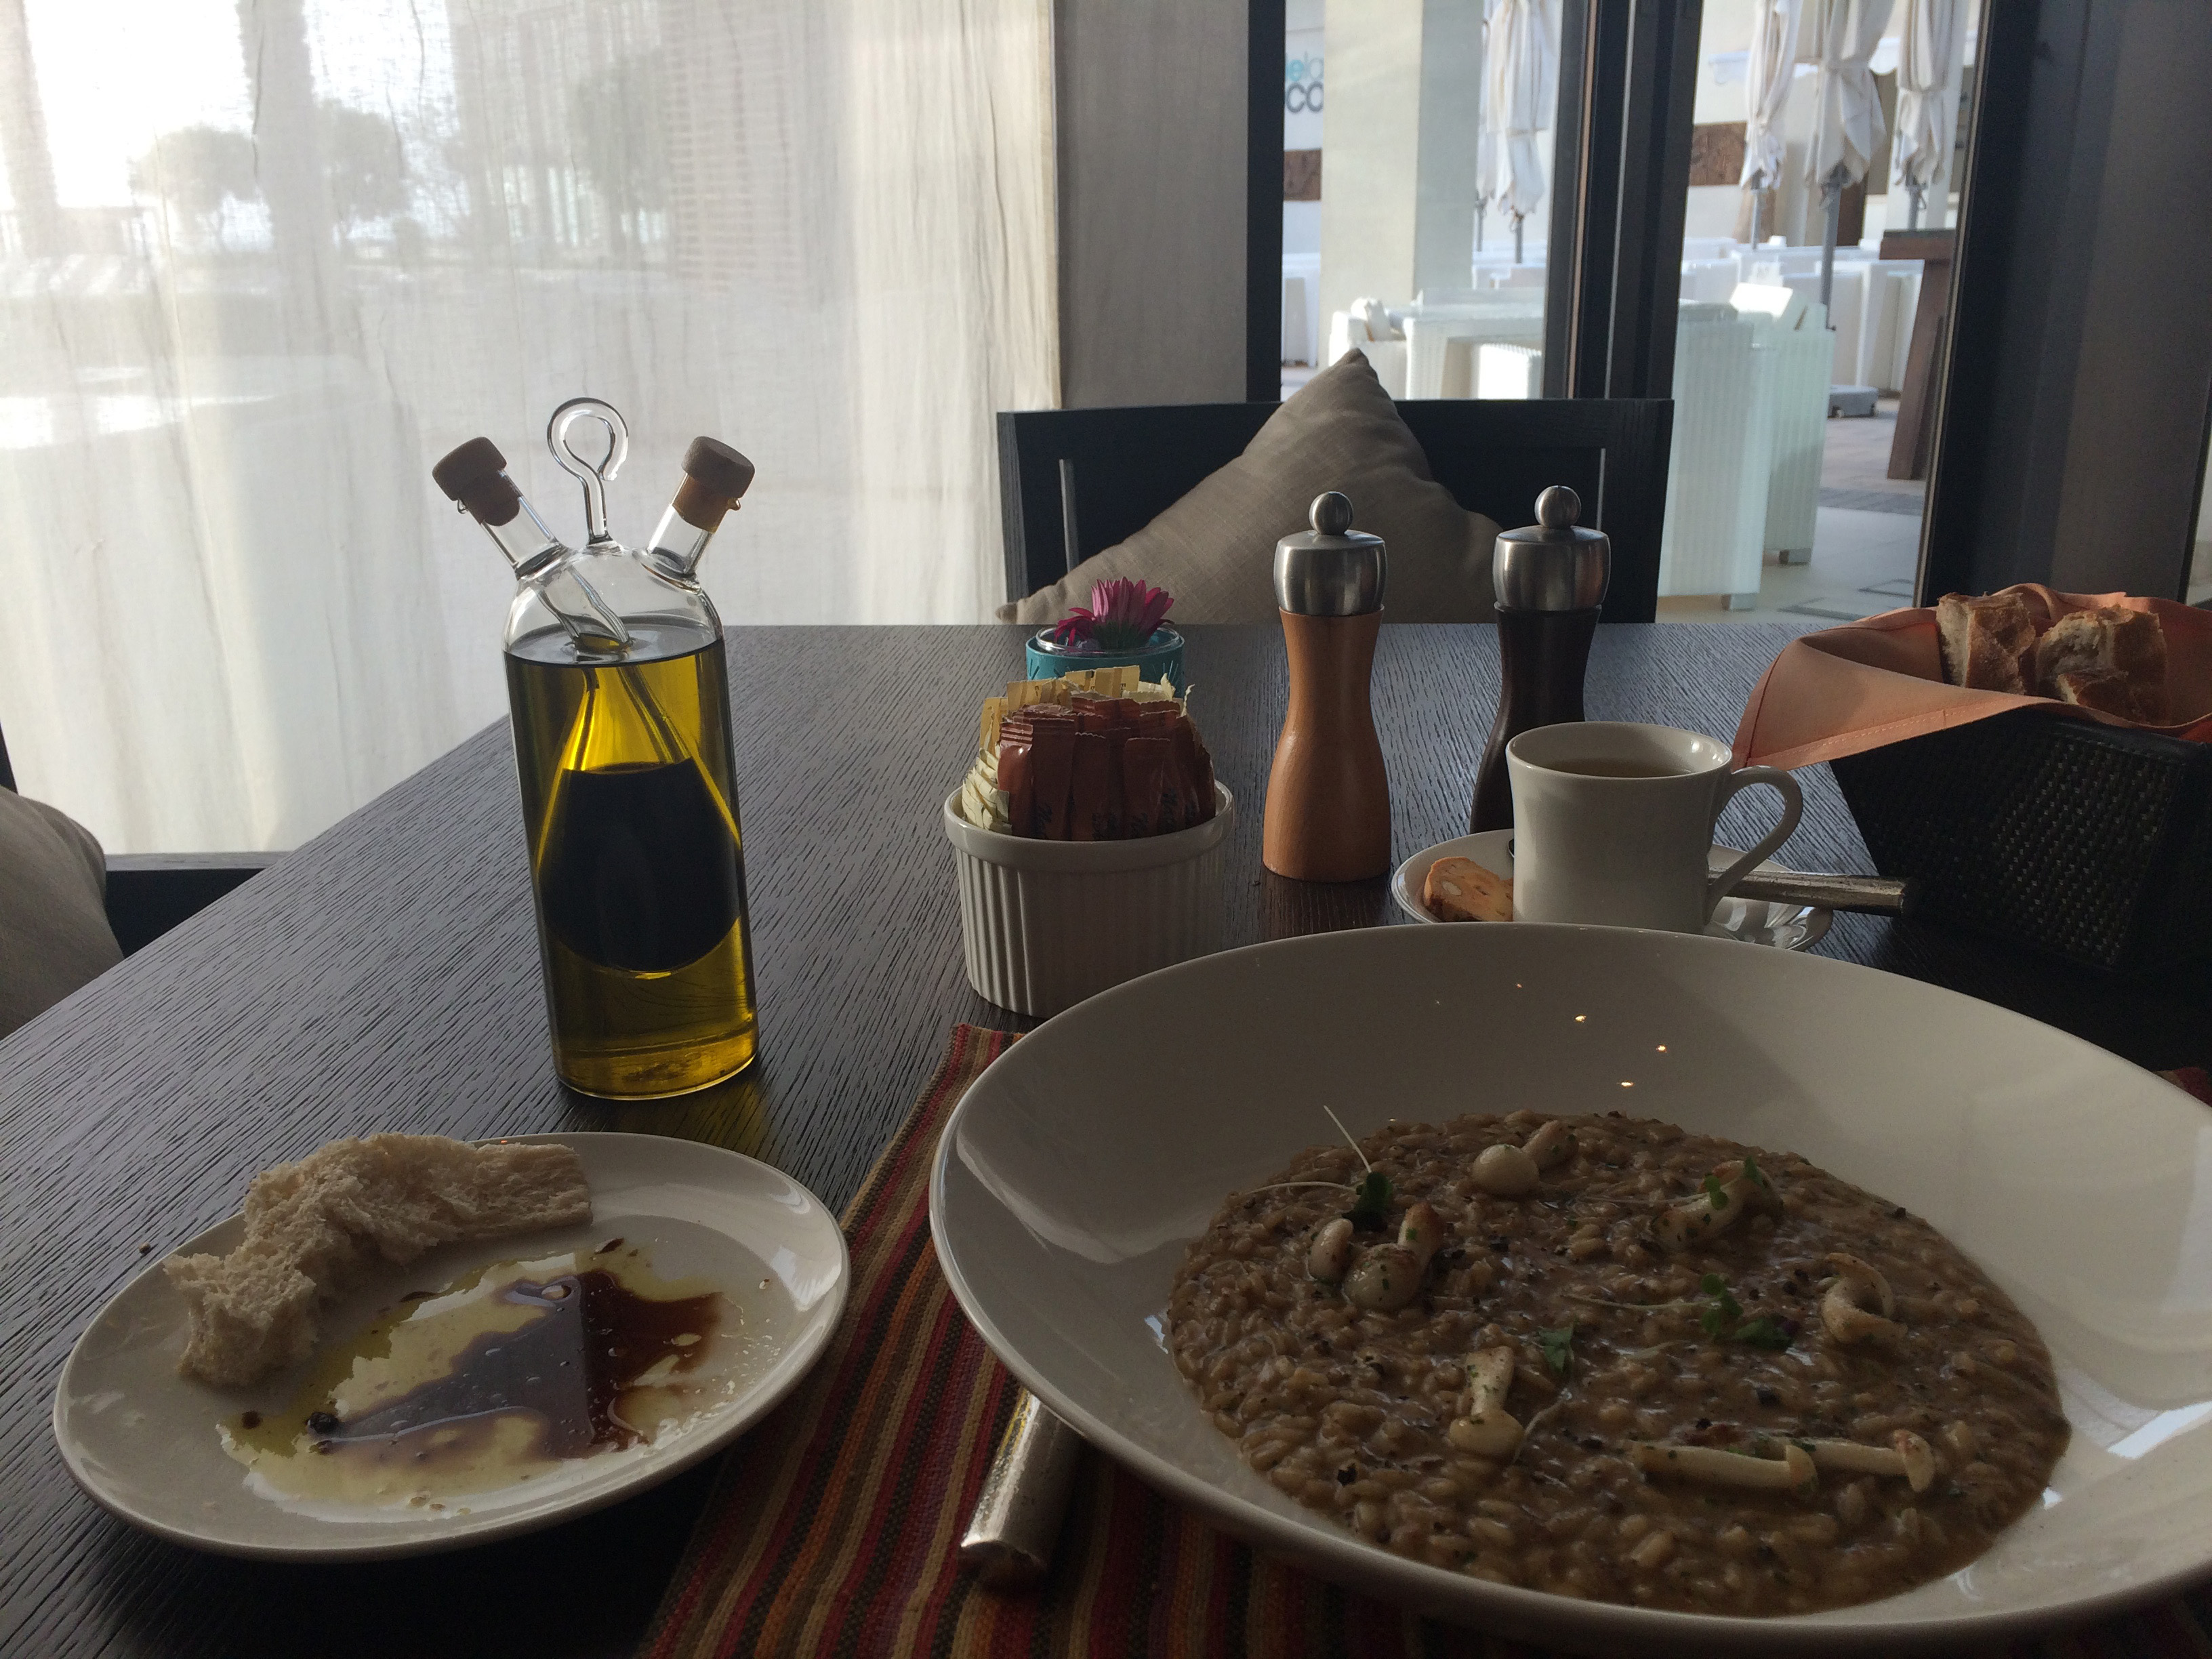 Risotto in the Safina Restaurant